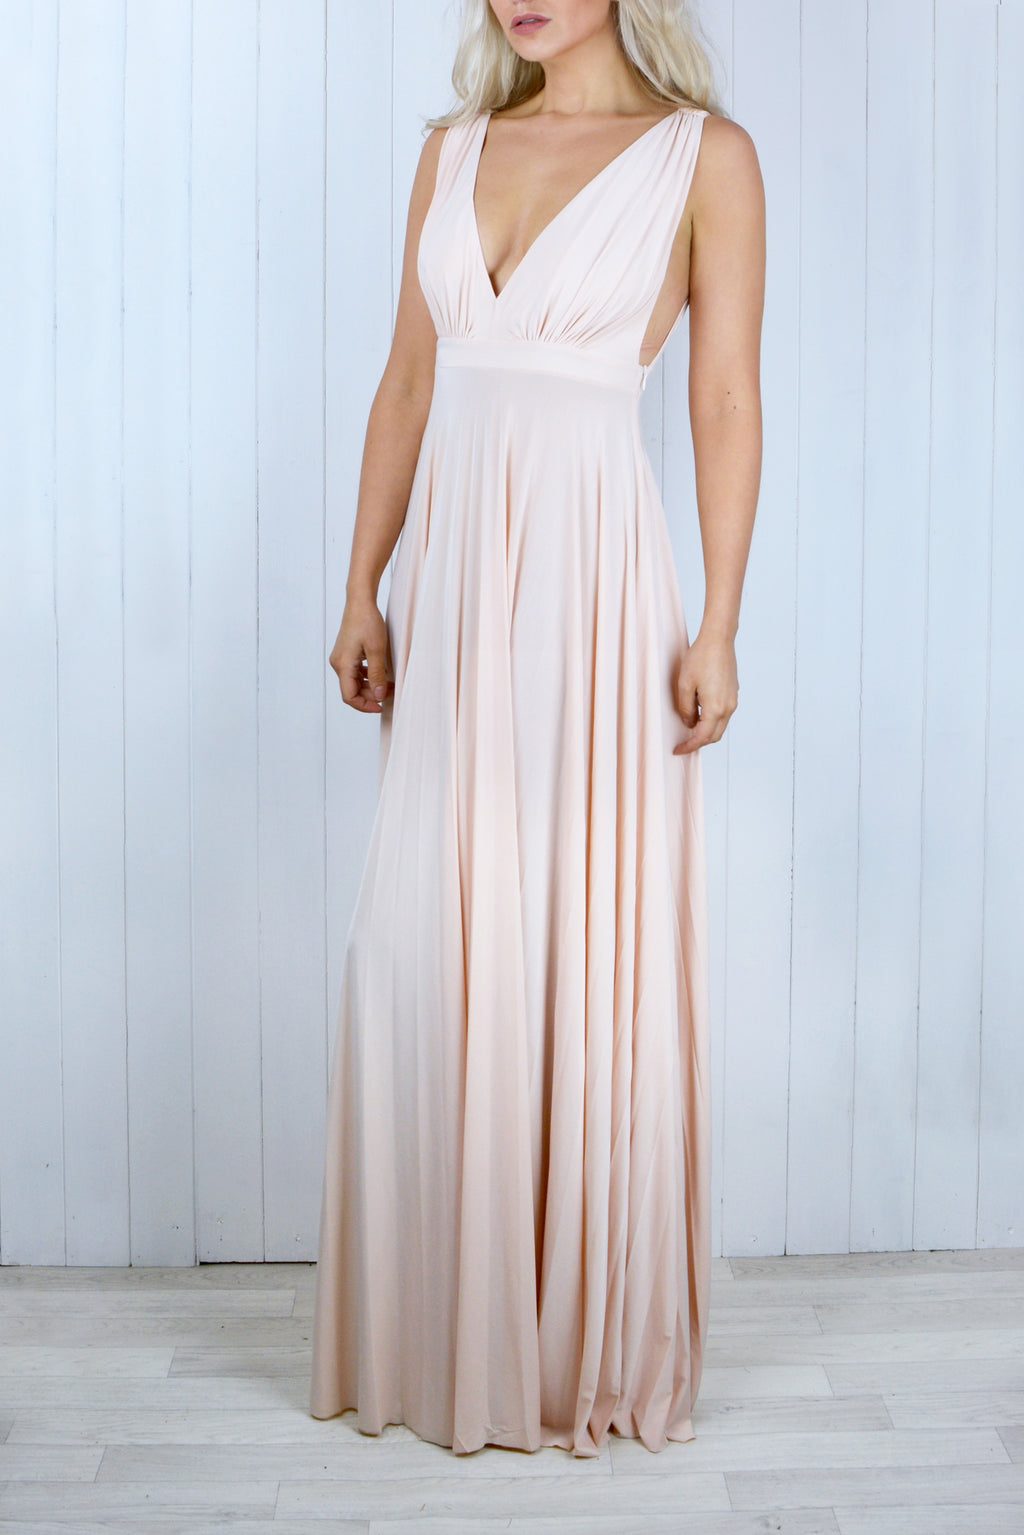 Zola Pleated Maxi Dress in Nude